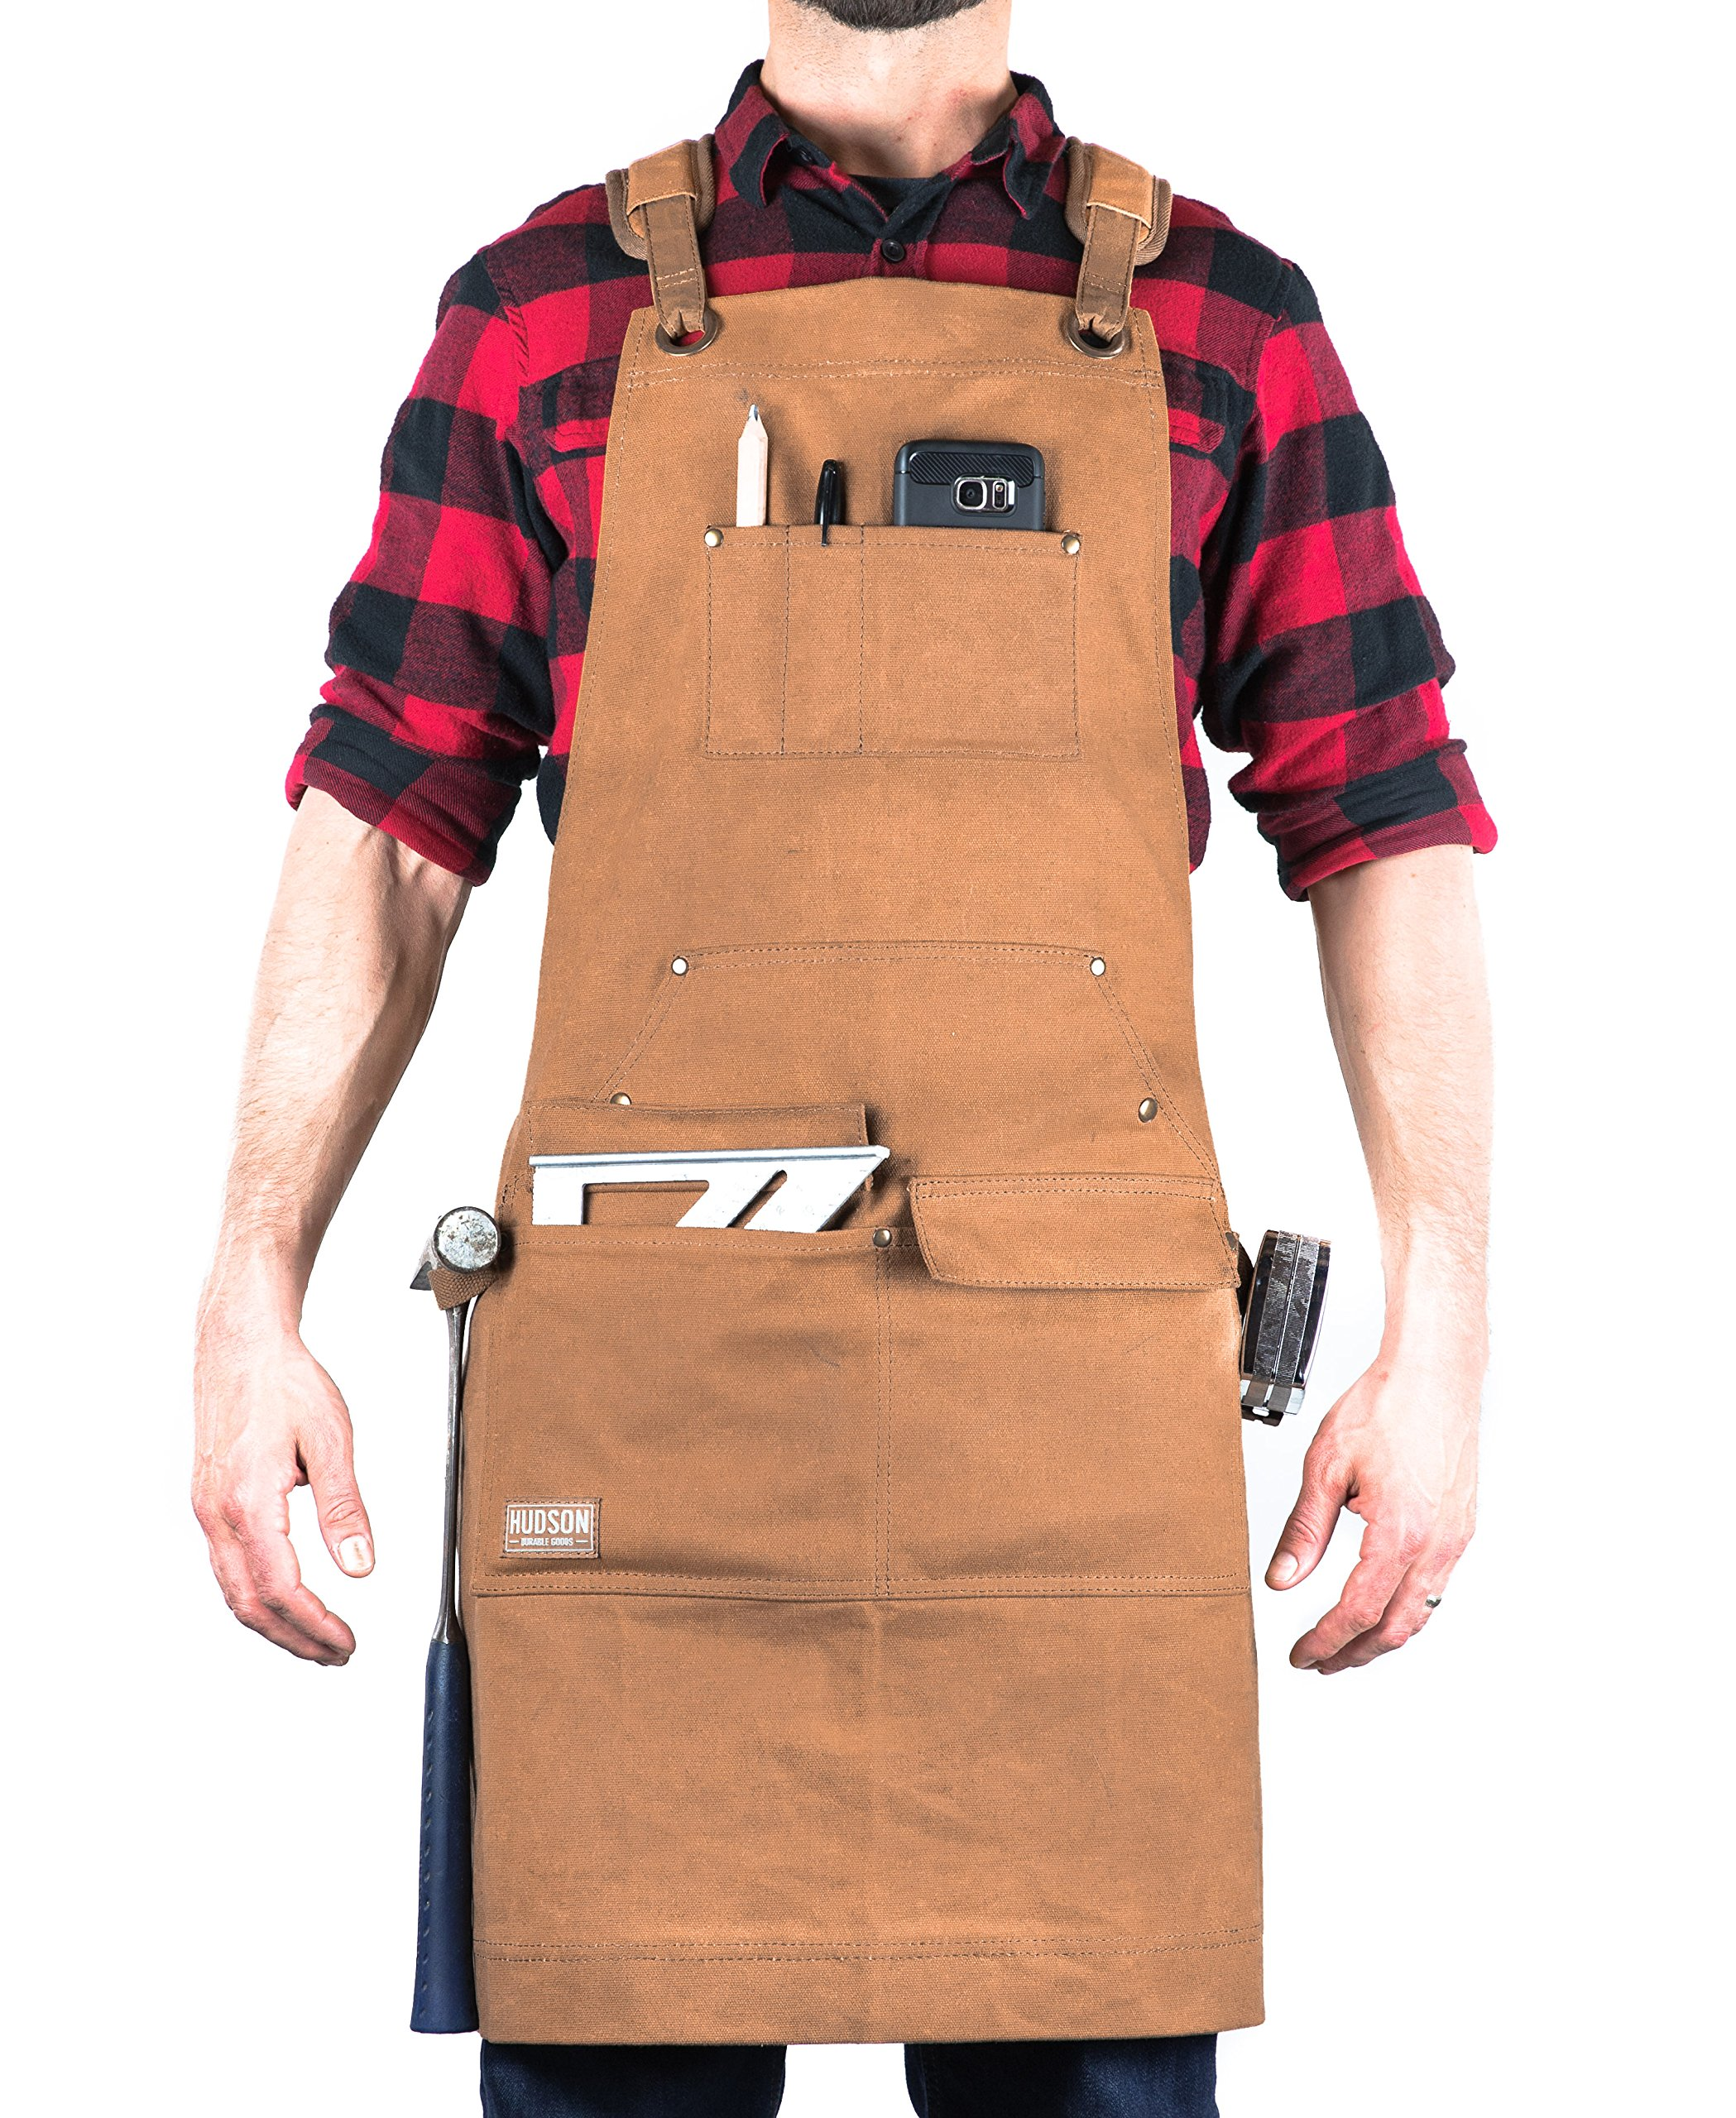 Hudson Durable Goods - Woodworking Edition - Waxed Canvas Apron (Brown) - Padded Straps, Quick Release Buckle, 2x Hammer Loops, Adjustable M to XXL by Hudson Durable Goods